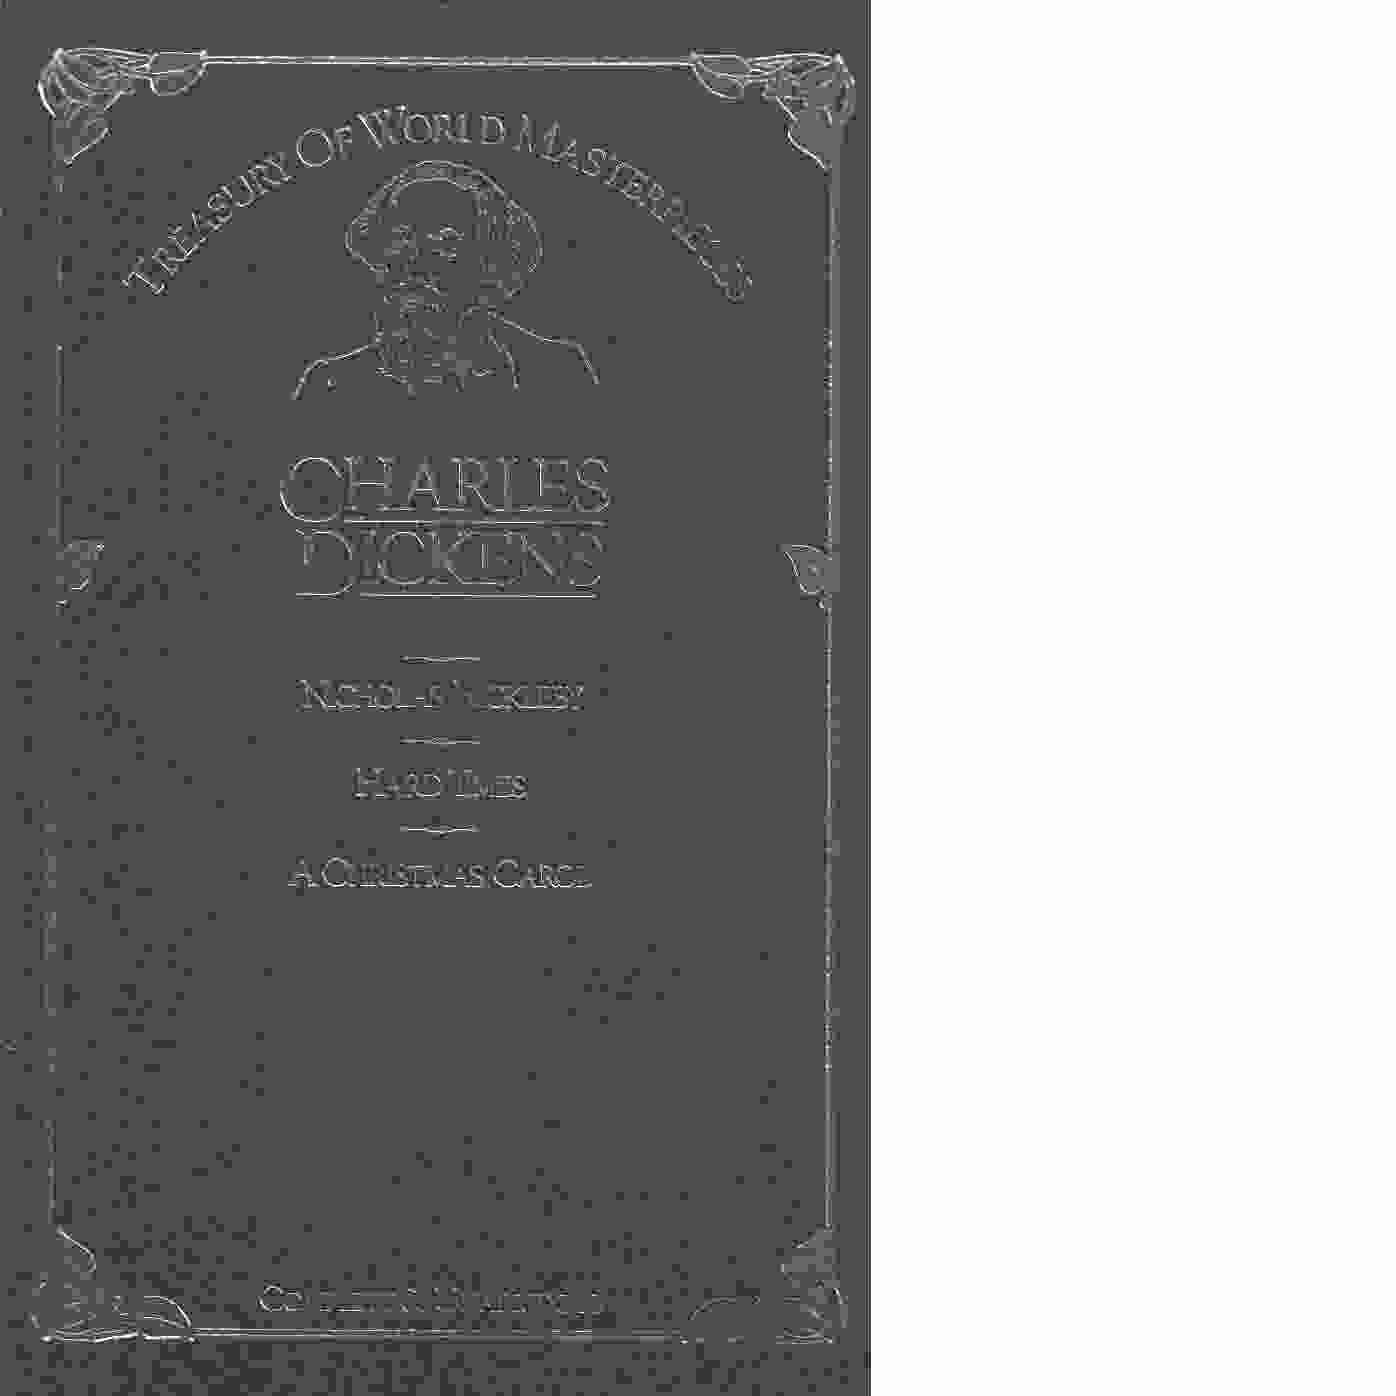 Nicholas Nickleby; Hard Times; A Christmas Carol (Complete and Unabridged) - Dickens, Charles